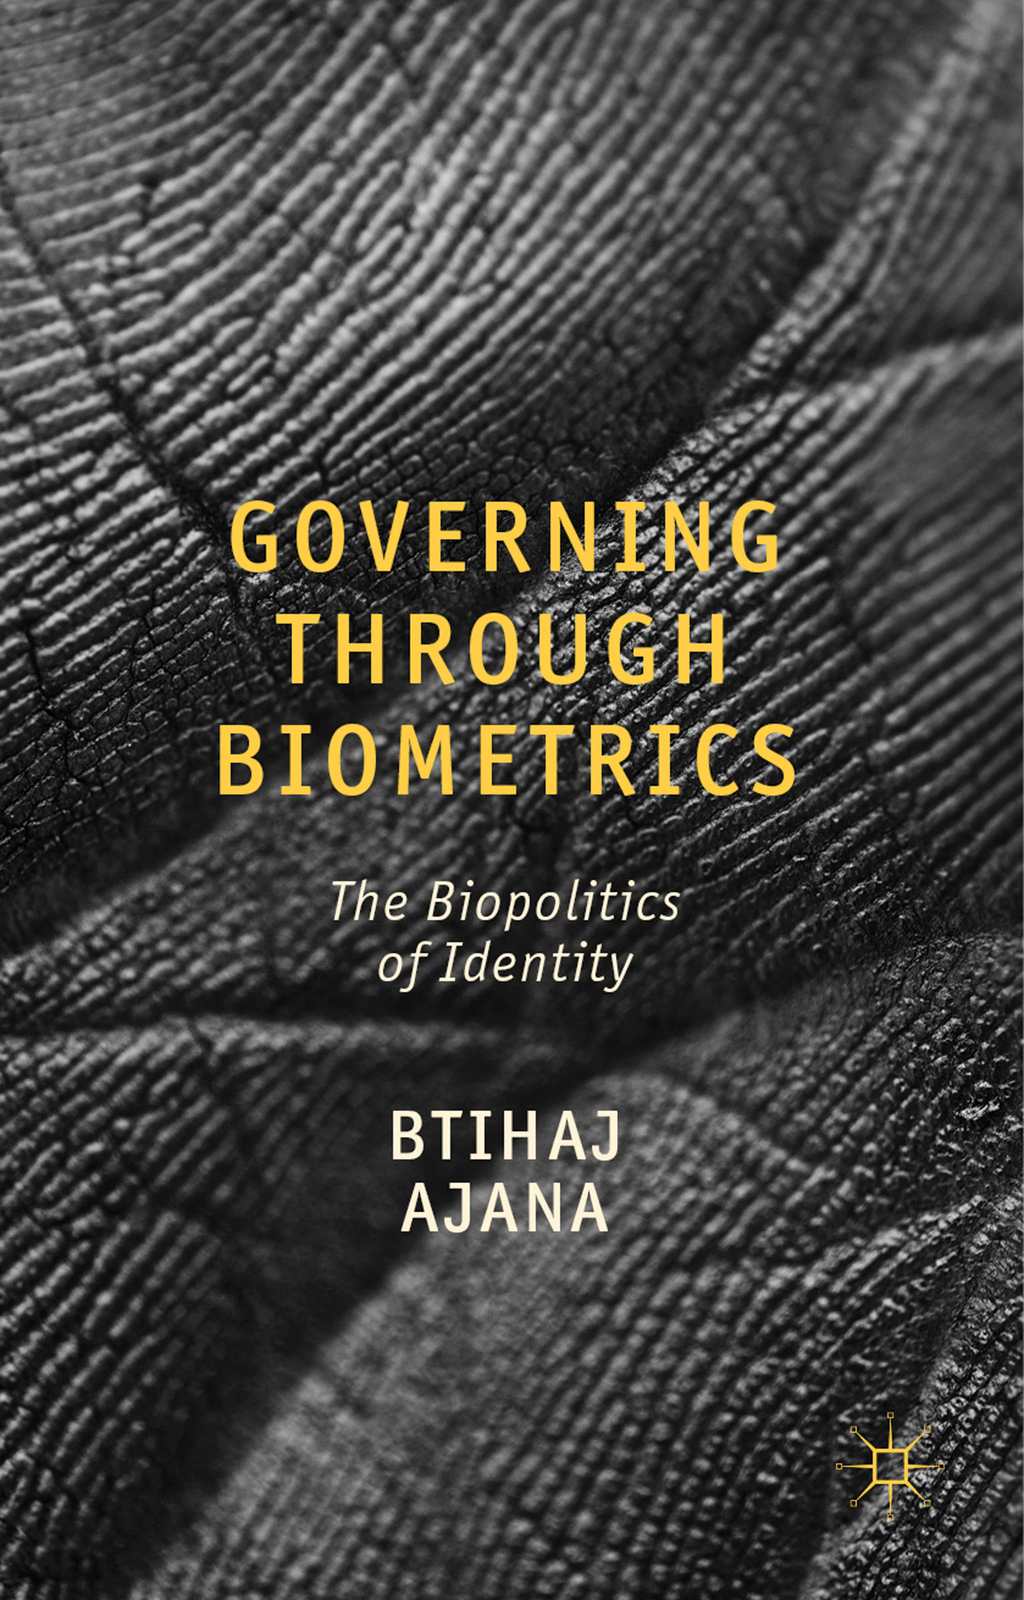 Governing through Biometrics The Biopolitics of Identity